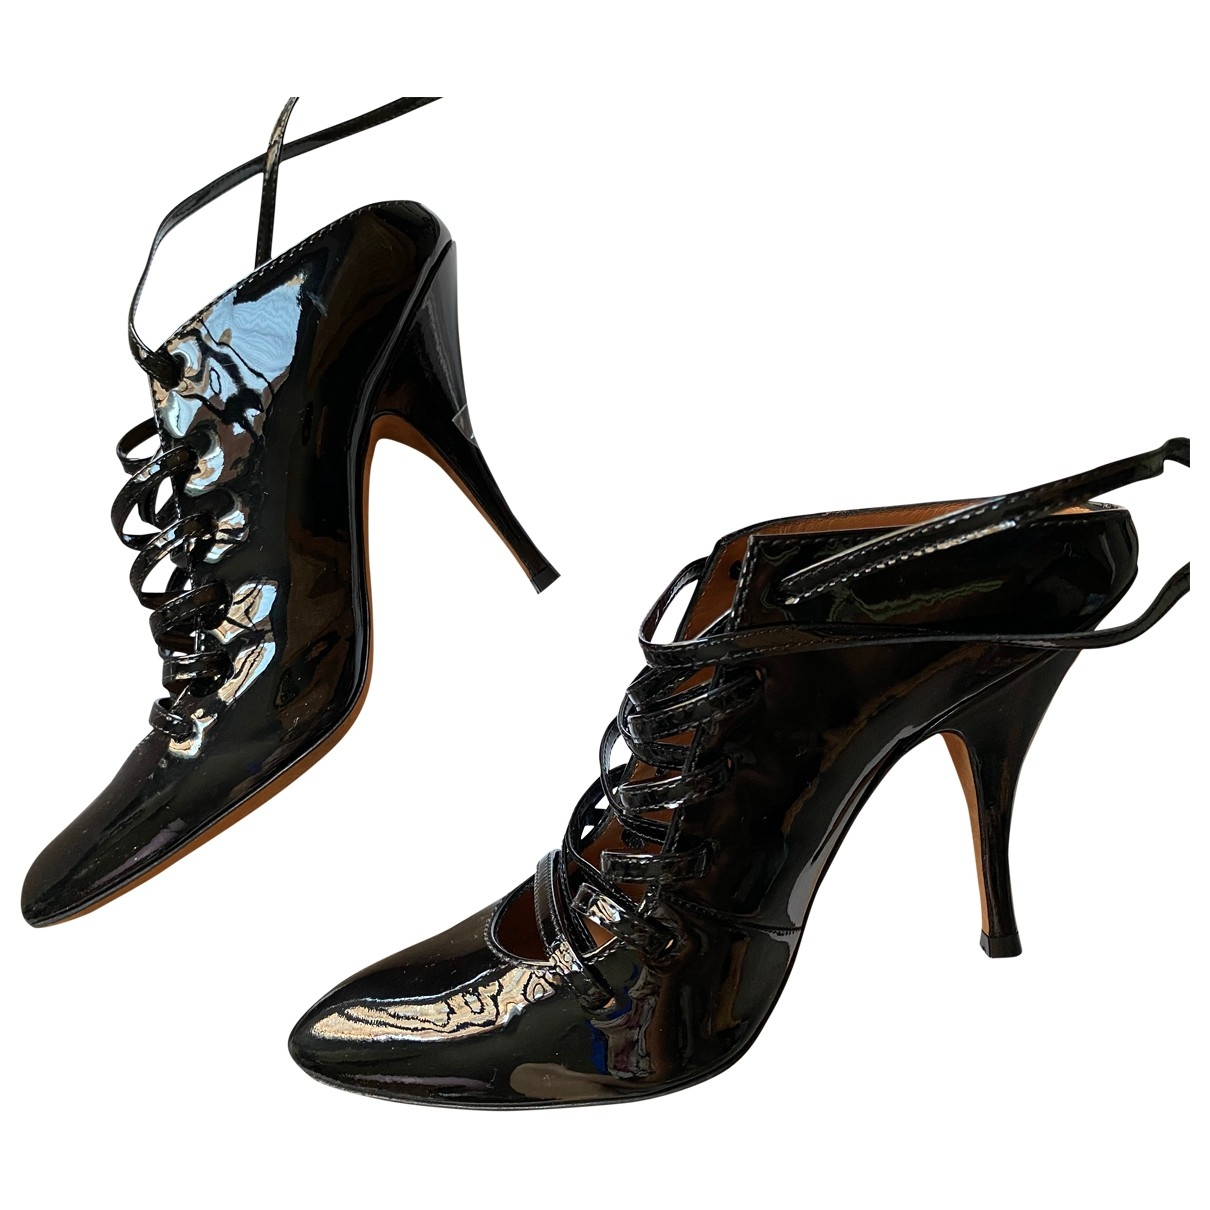 Givenchy \N Black Patent leather Heels for Women 36.5 EU